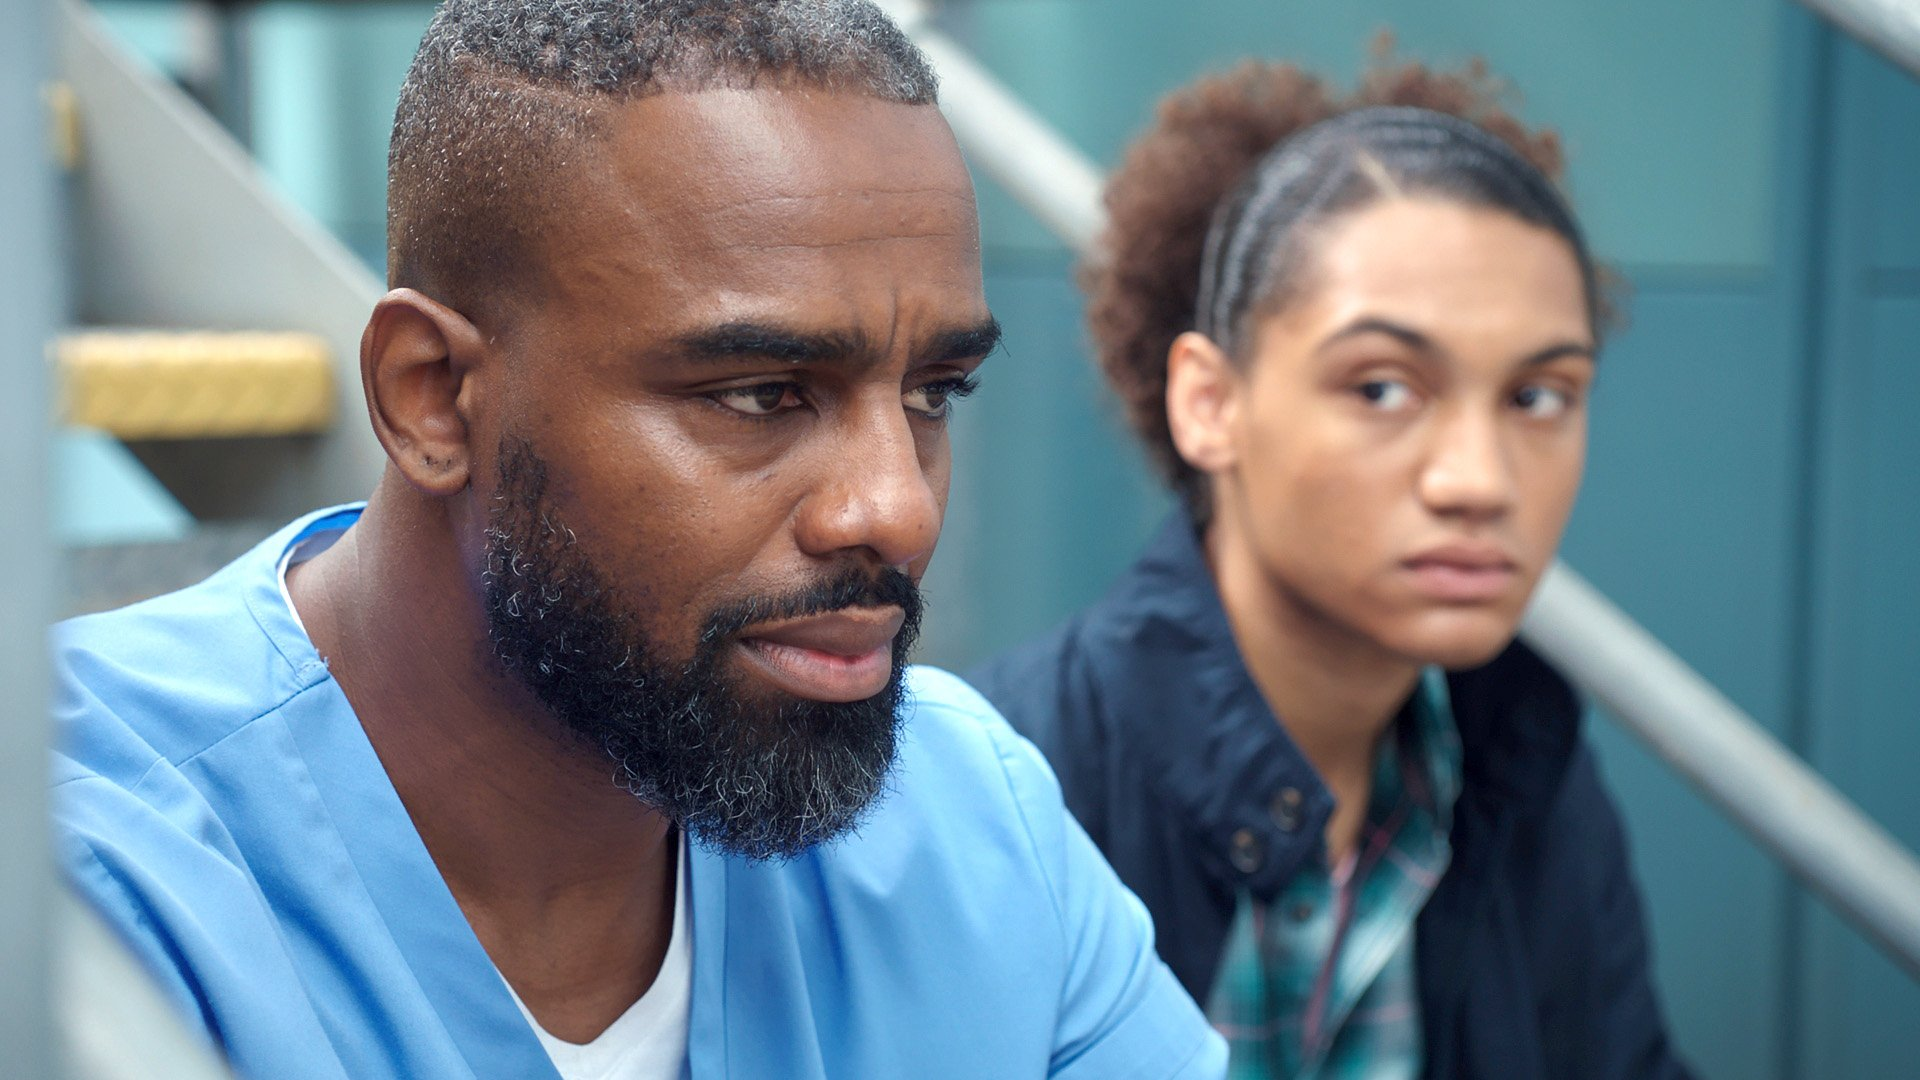 Casualty spoilers: Charles Venn on 'harrowing' schizophrenia storyline that he hopes 'will get people talking'